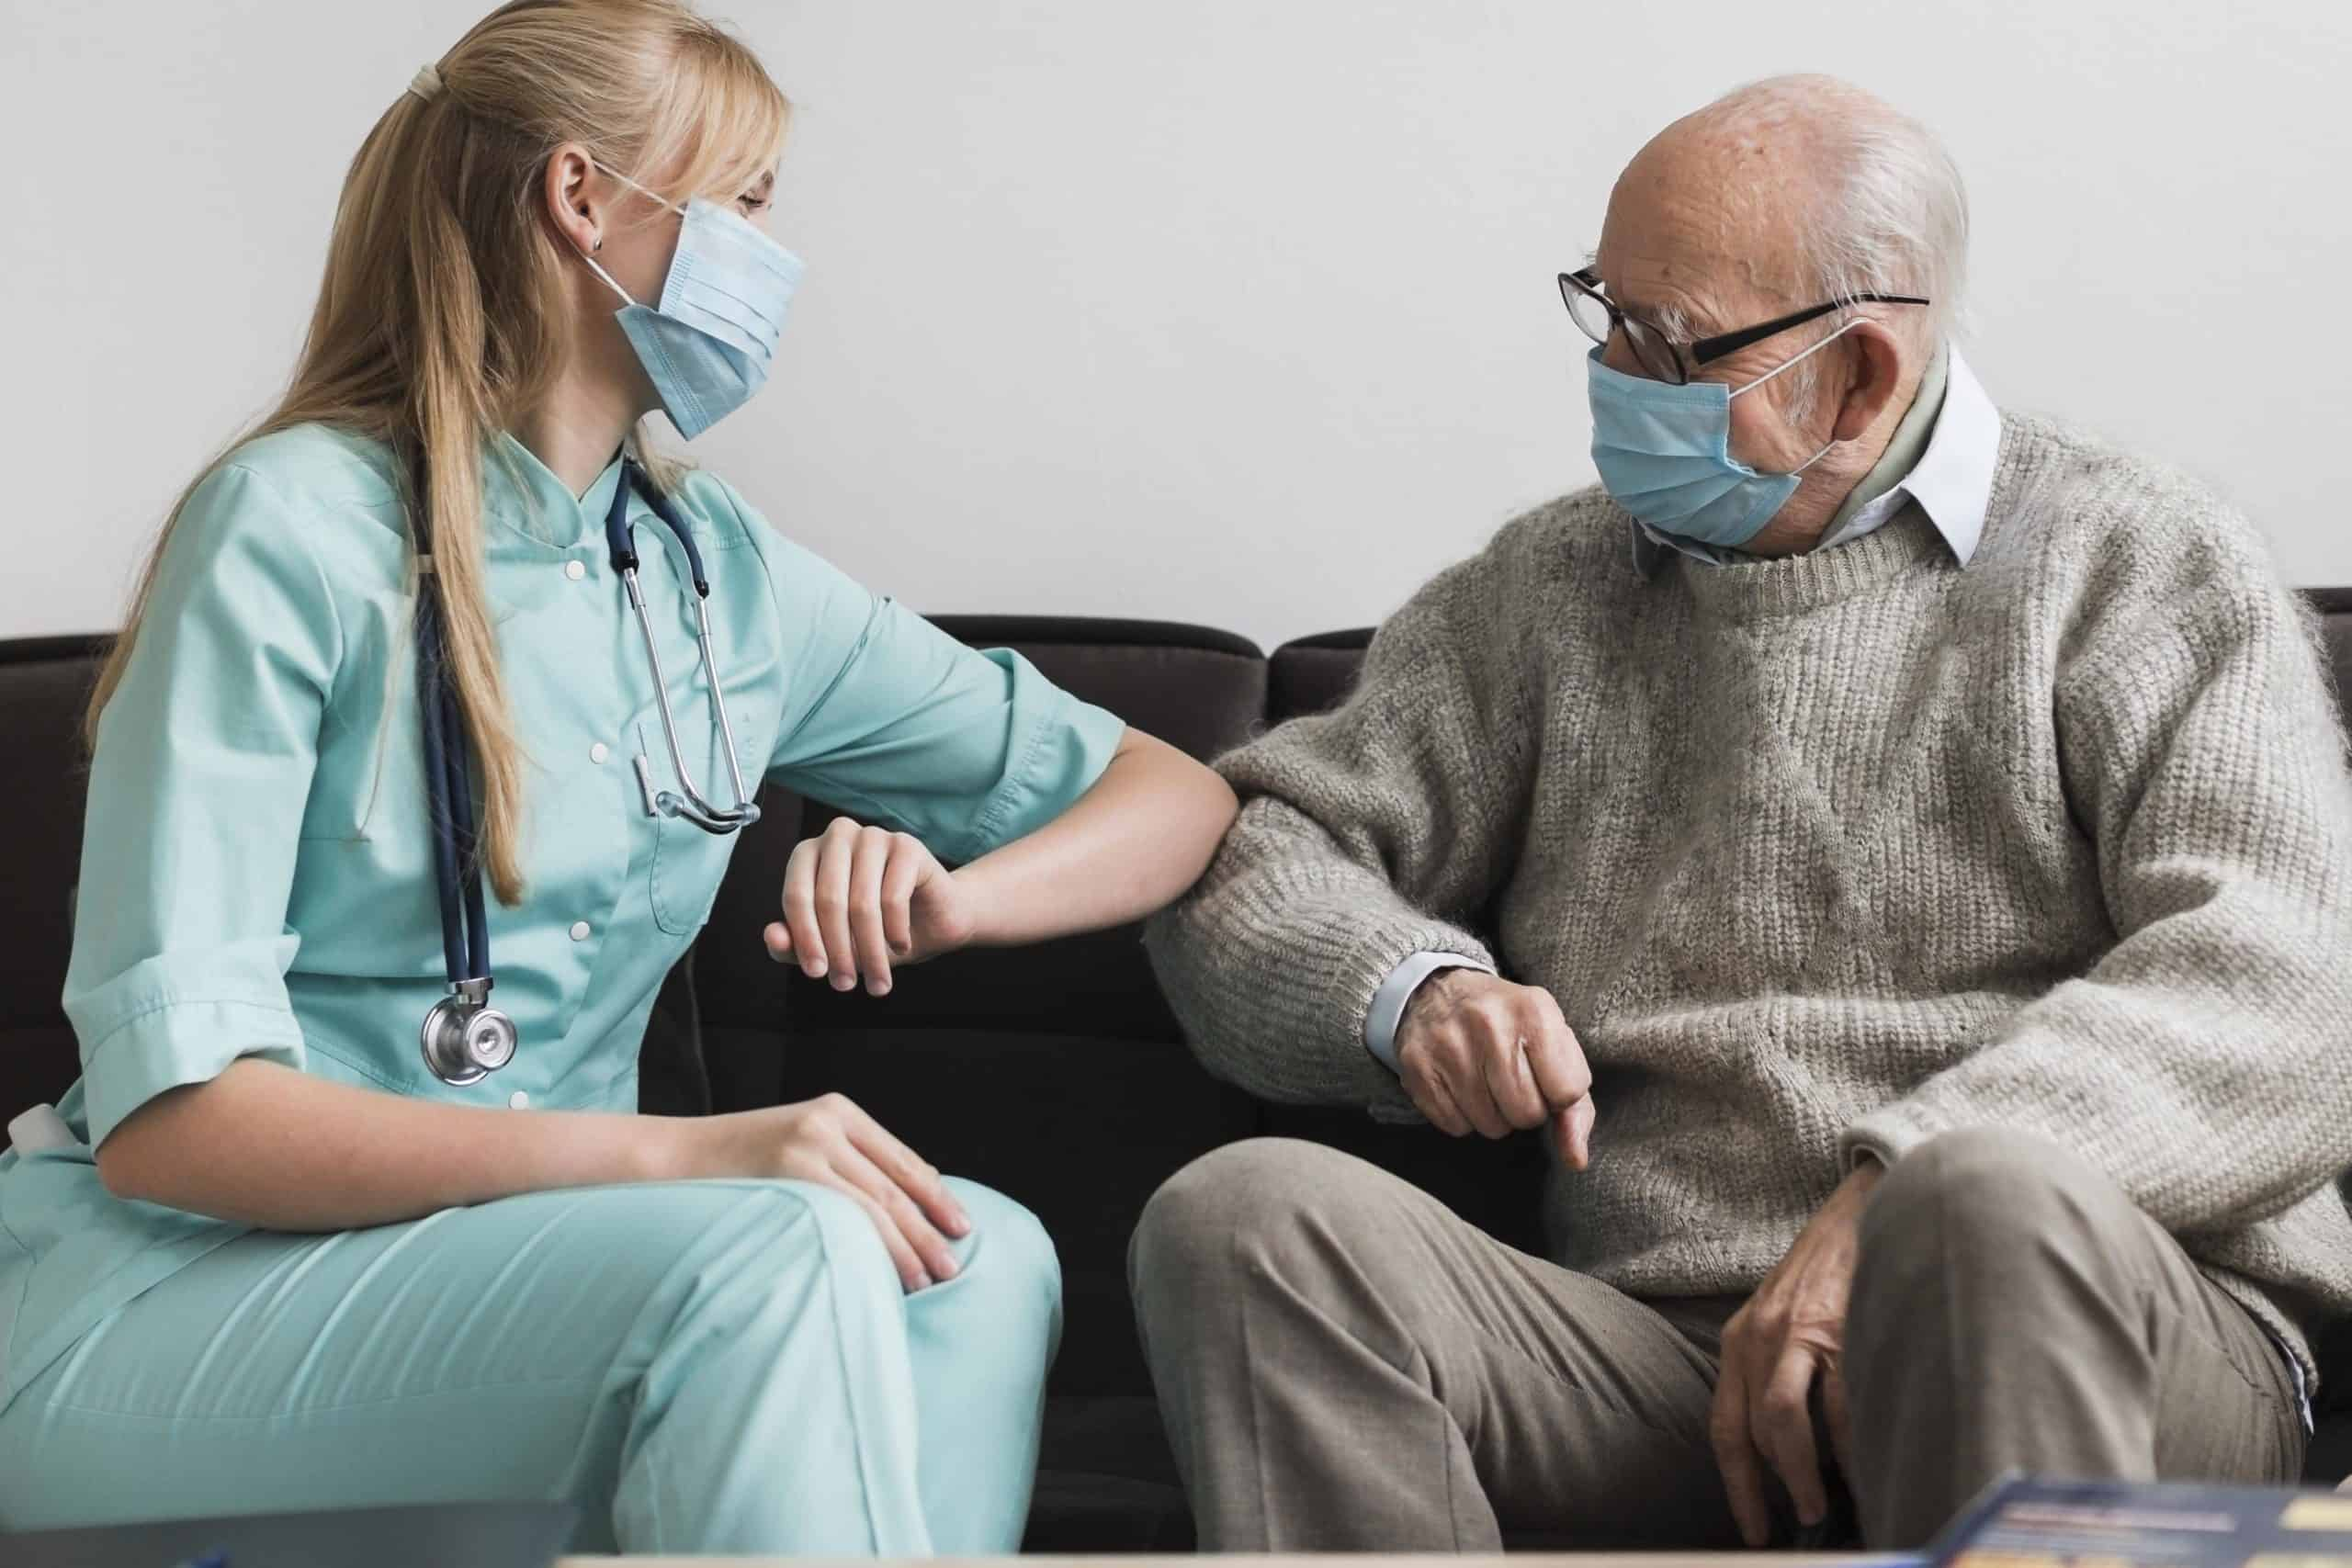 photograph of a nurse and an older man touching elbows